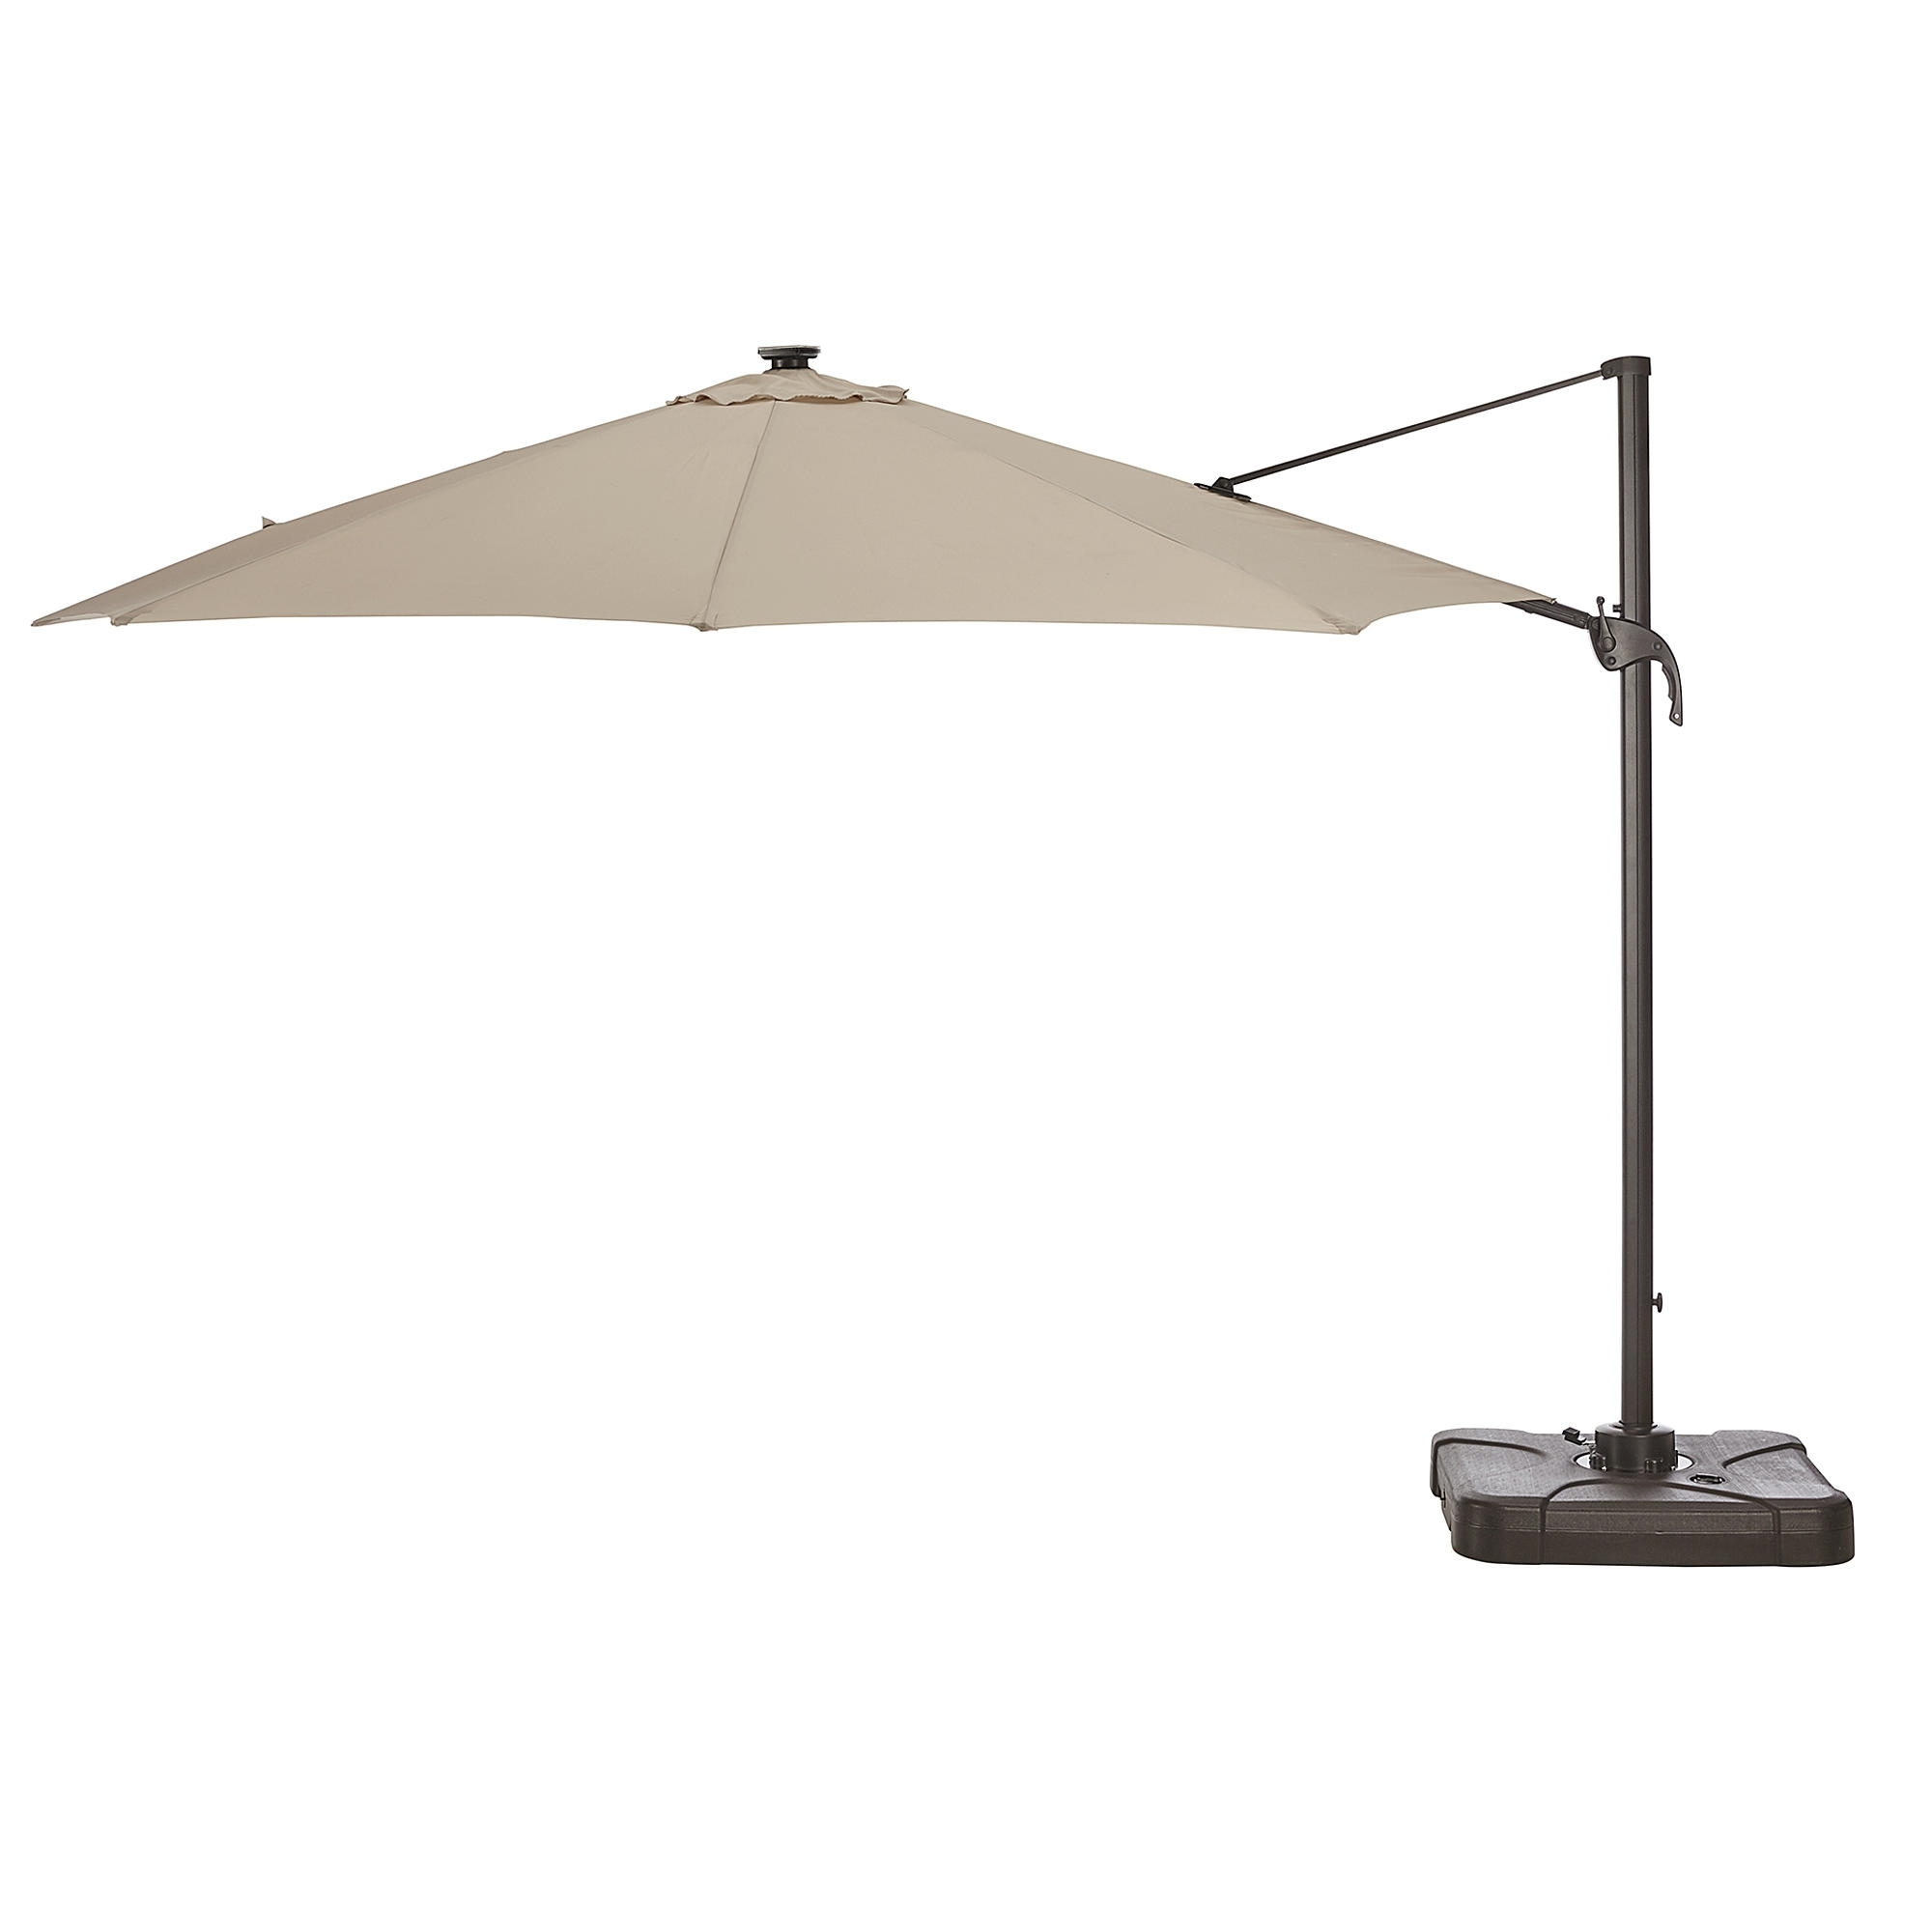 Sears Patio Umbrellas With Current Replacement Umbrella Canopy – Garden Winds (View 19 of 20)